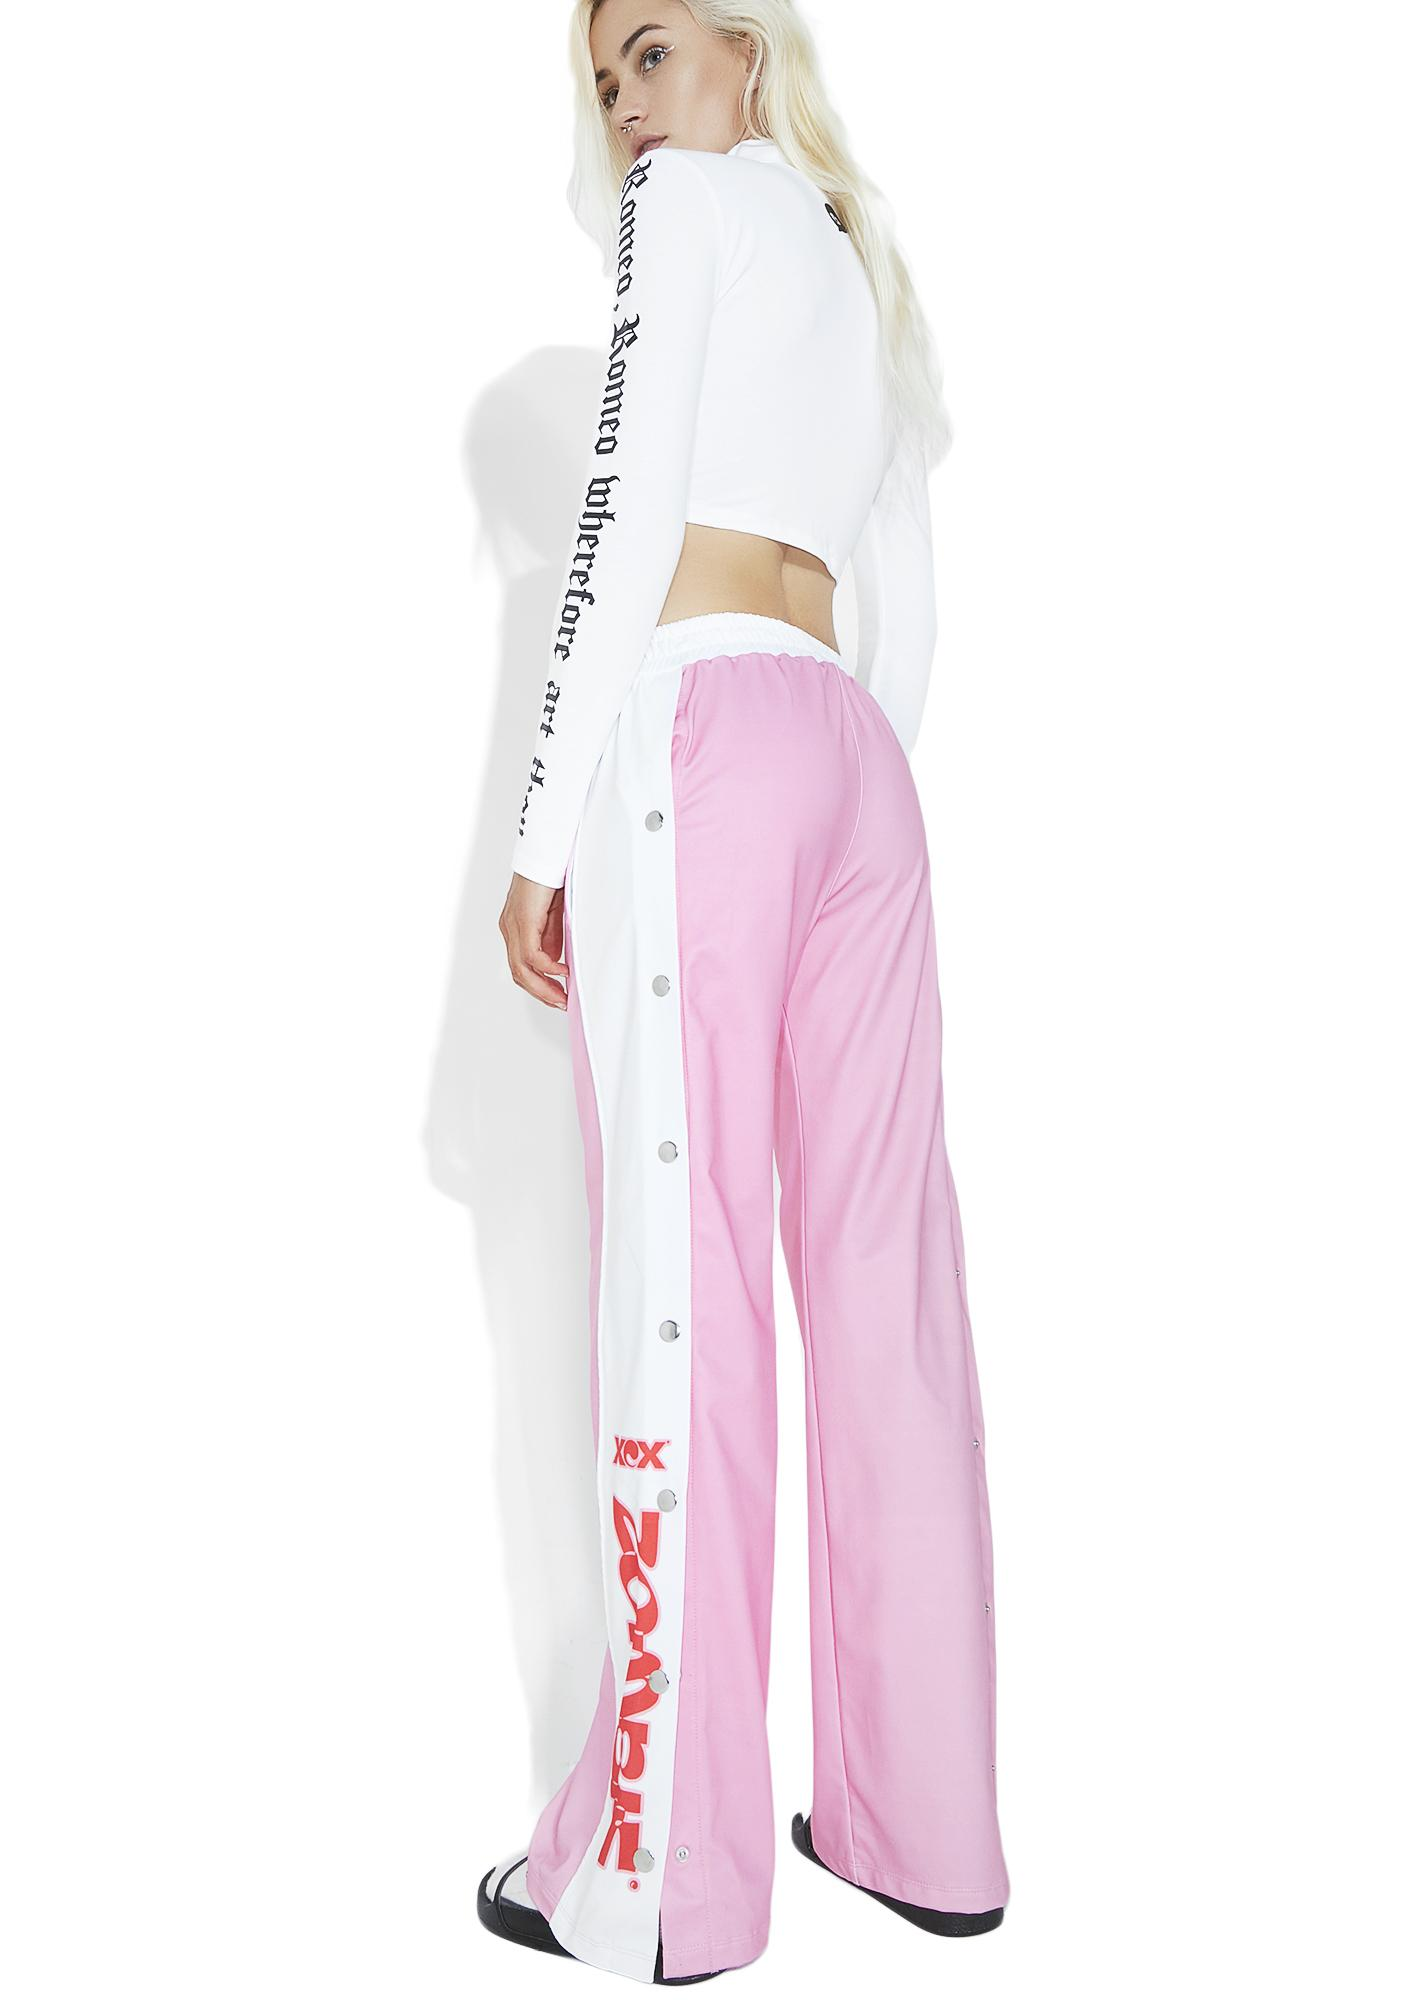 Illustrated People Charli XCX Popper Tracksuit Bottoms